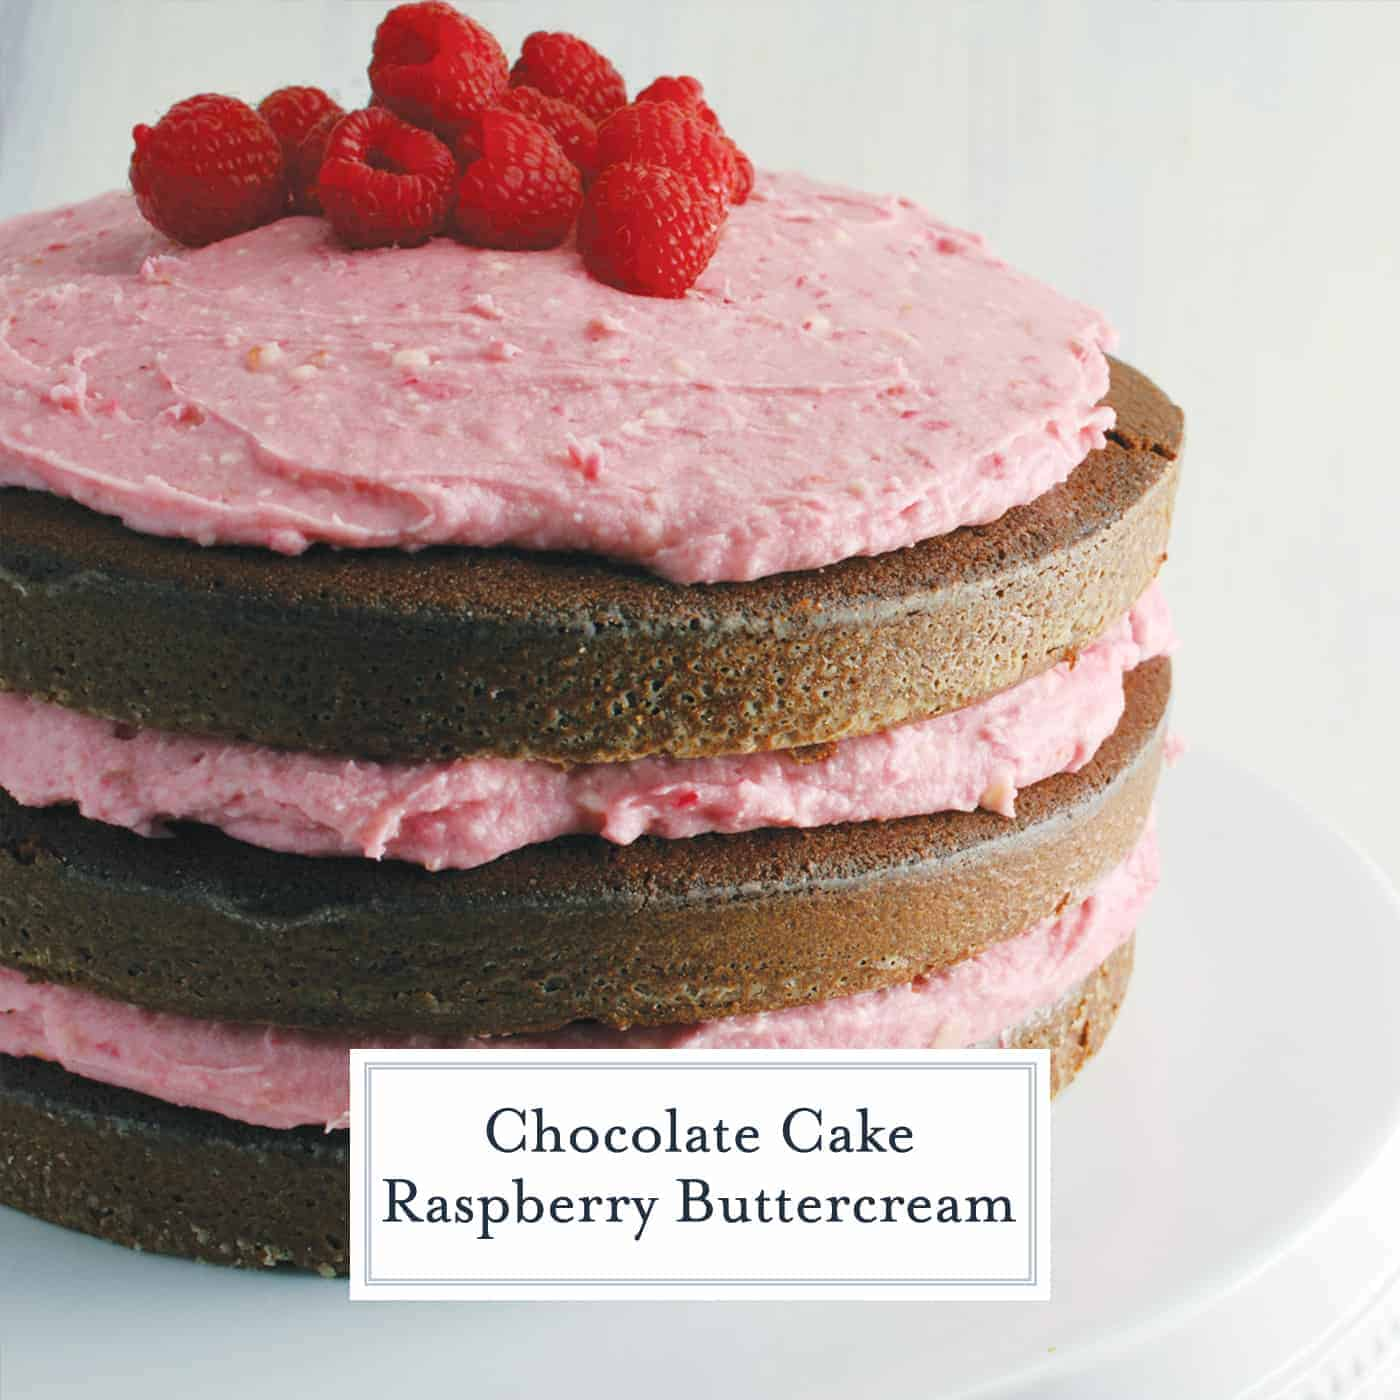 Naked cakes are all the rage right now, so I created a three layer Chocolate Cake with Raspberry Buttercream. Yum! #nakedcakes #chocolatecake #raspberrybuttercream www.savoryexperiments.com